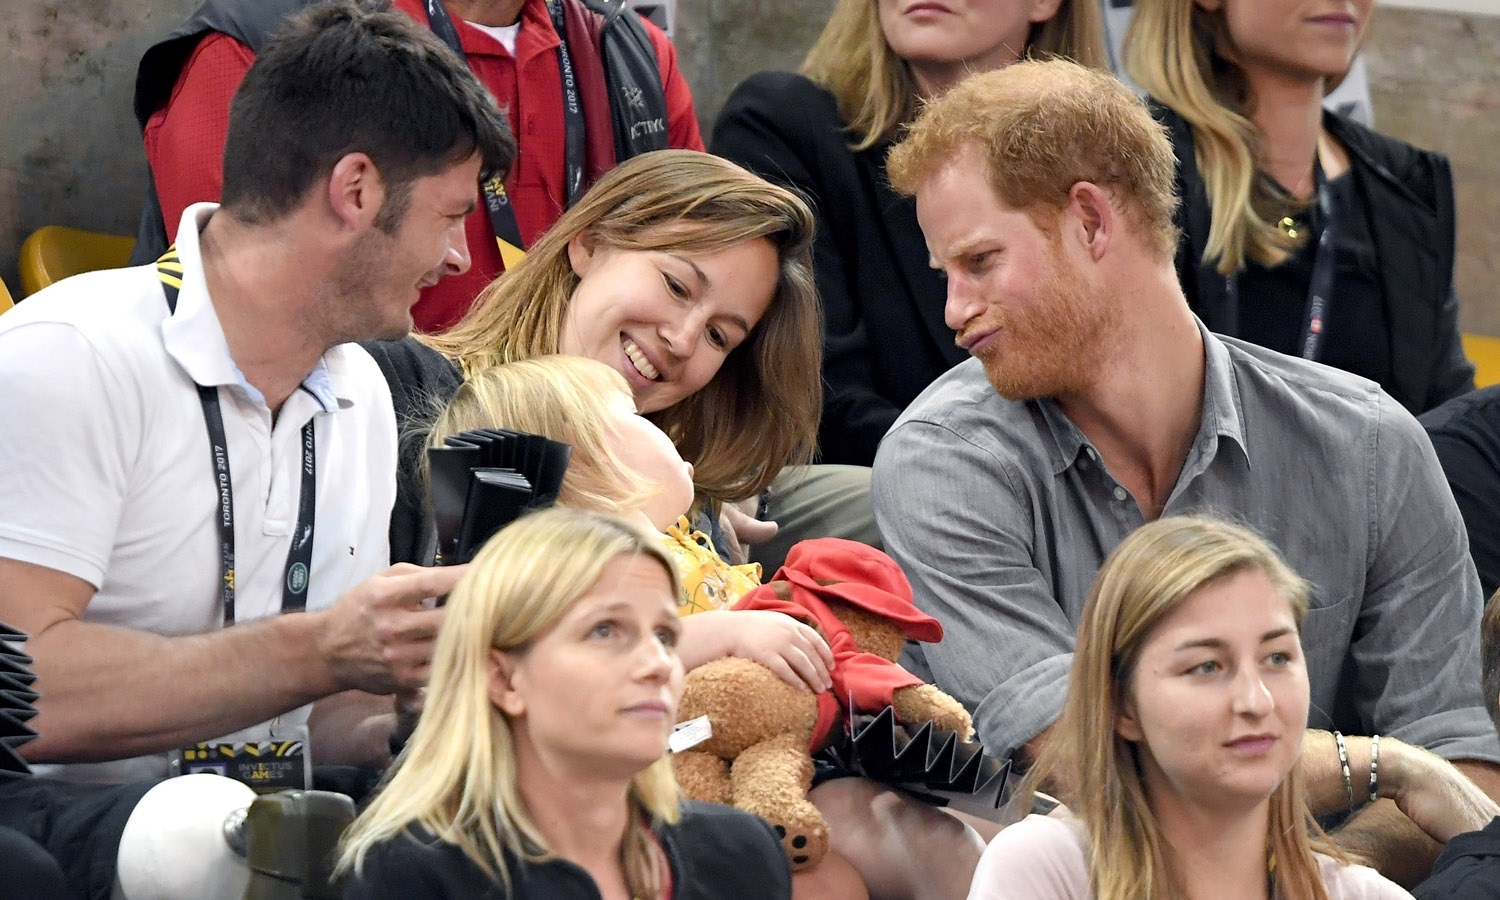 Prince Harry wows crowds with his adorable' singing voice as he attends musical with wife Meghan recommendations